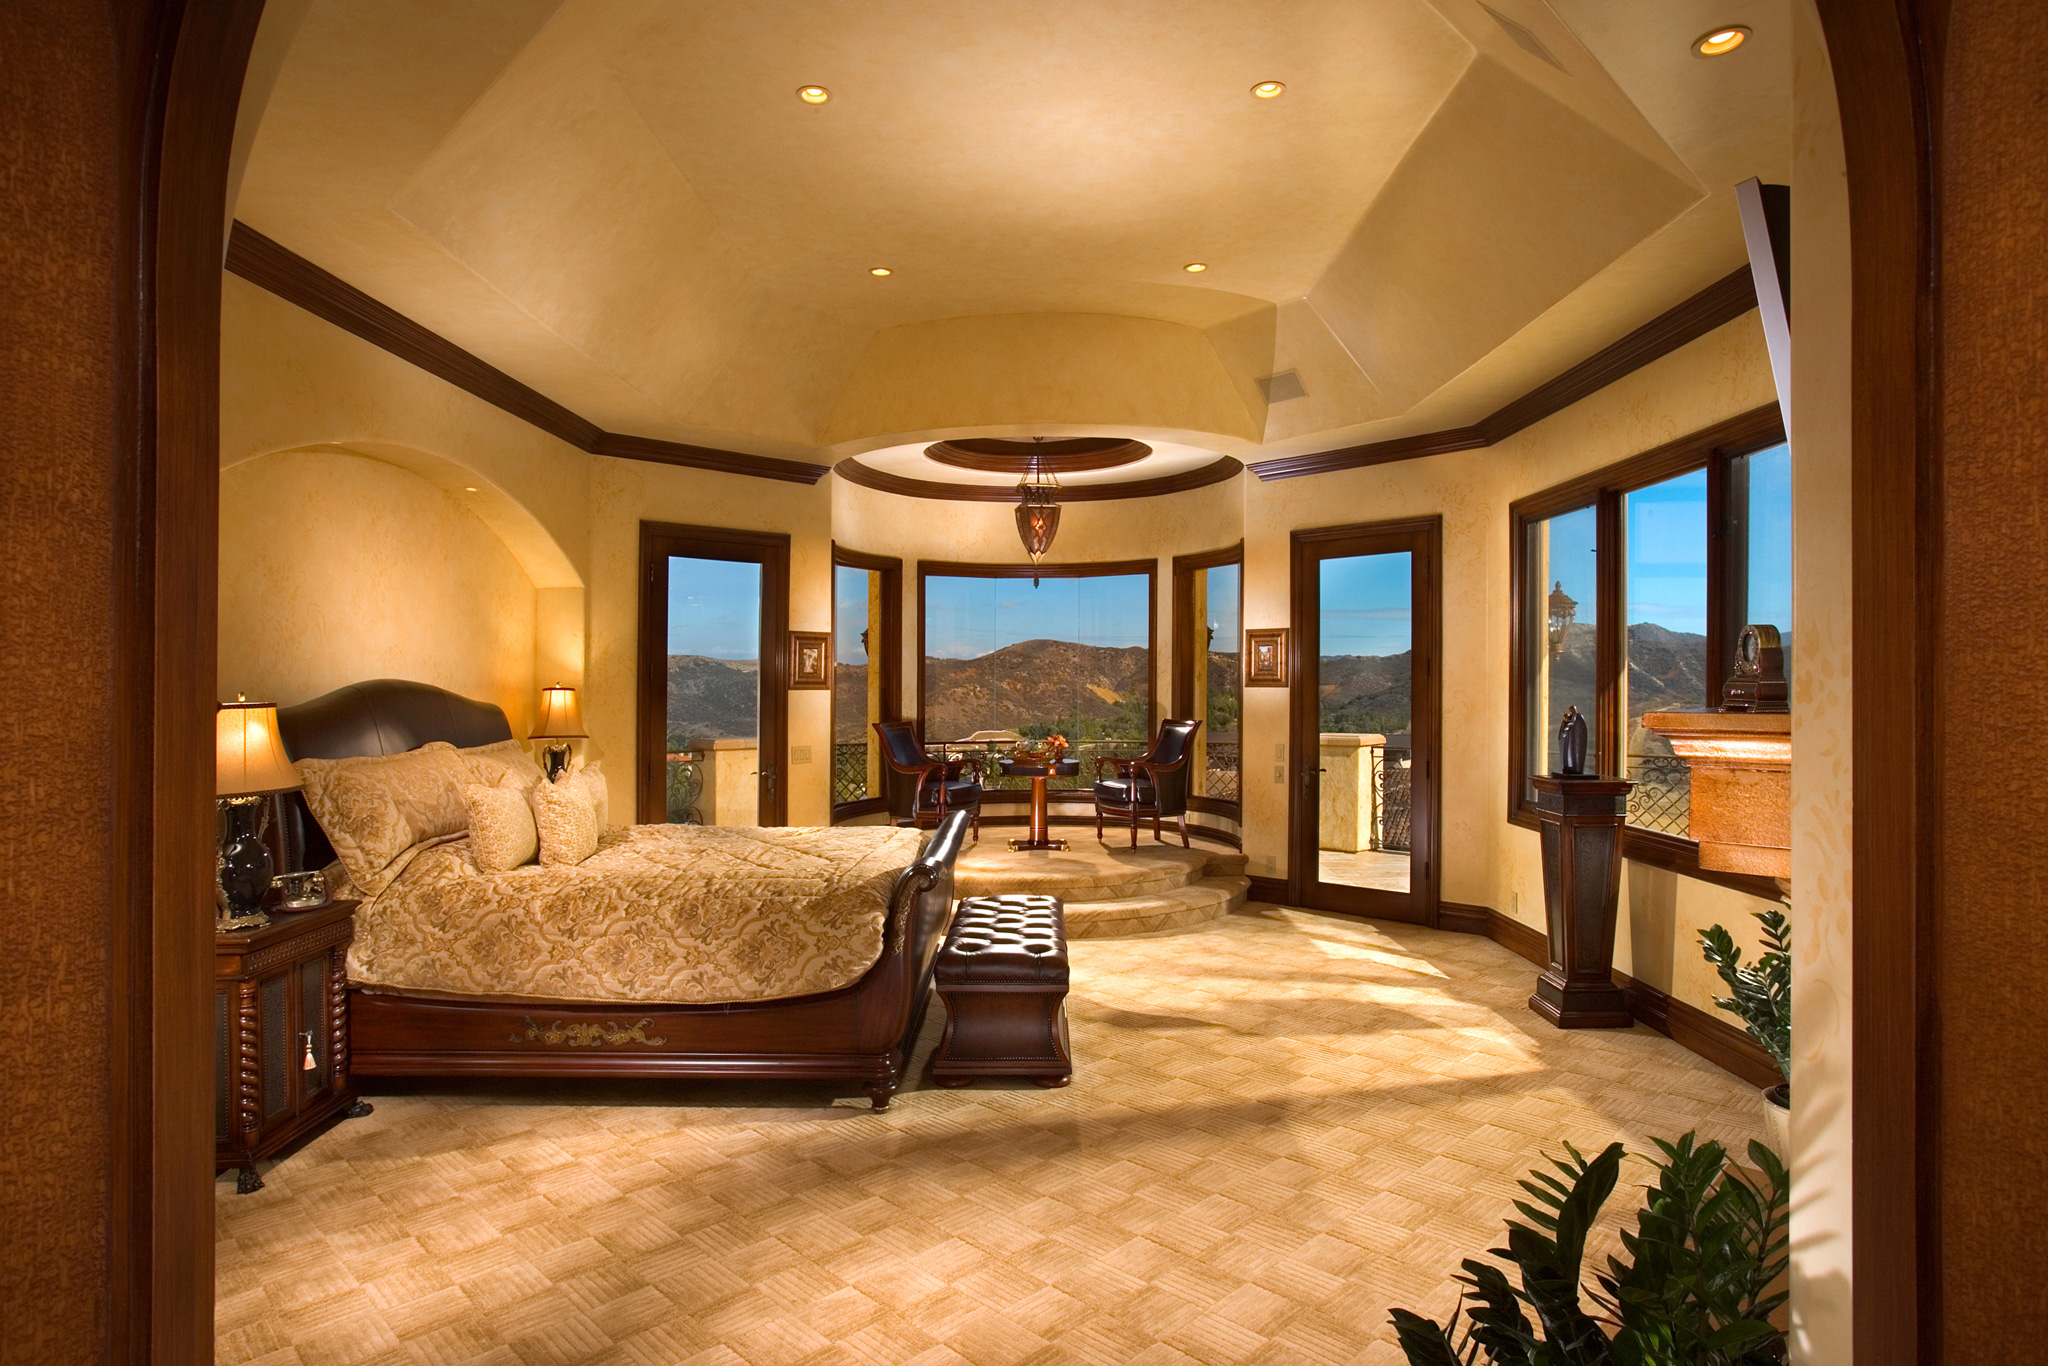 68 Jaw Dropping Luxury Master Bedroom Designs Home Garden Sphere